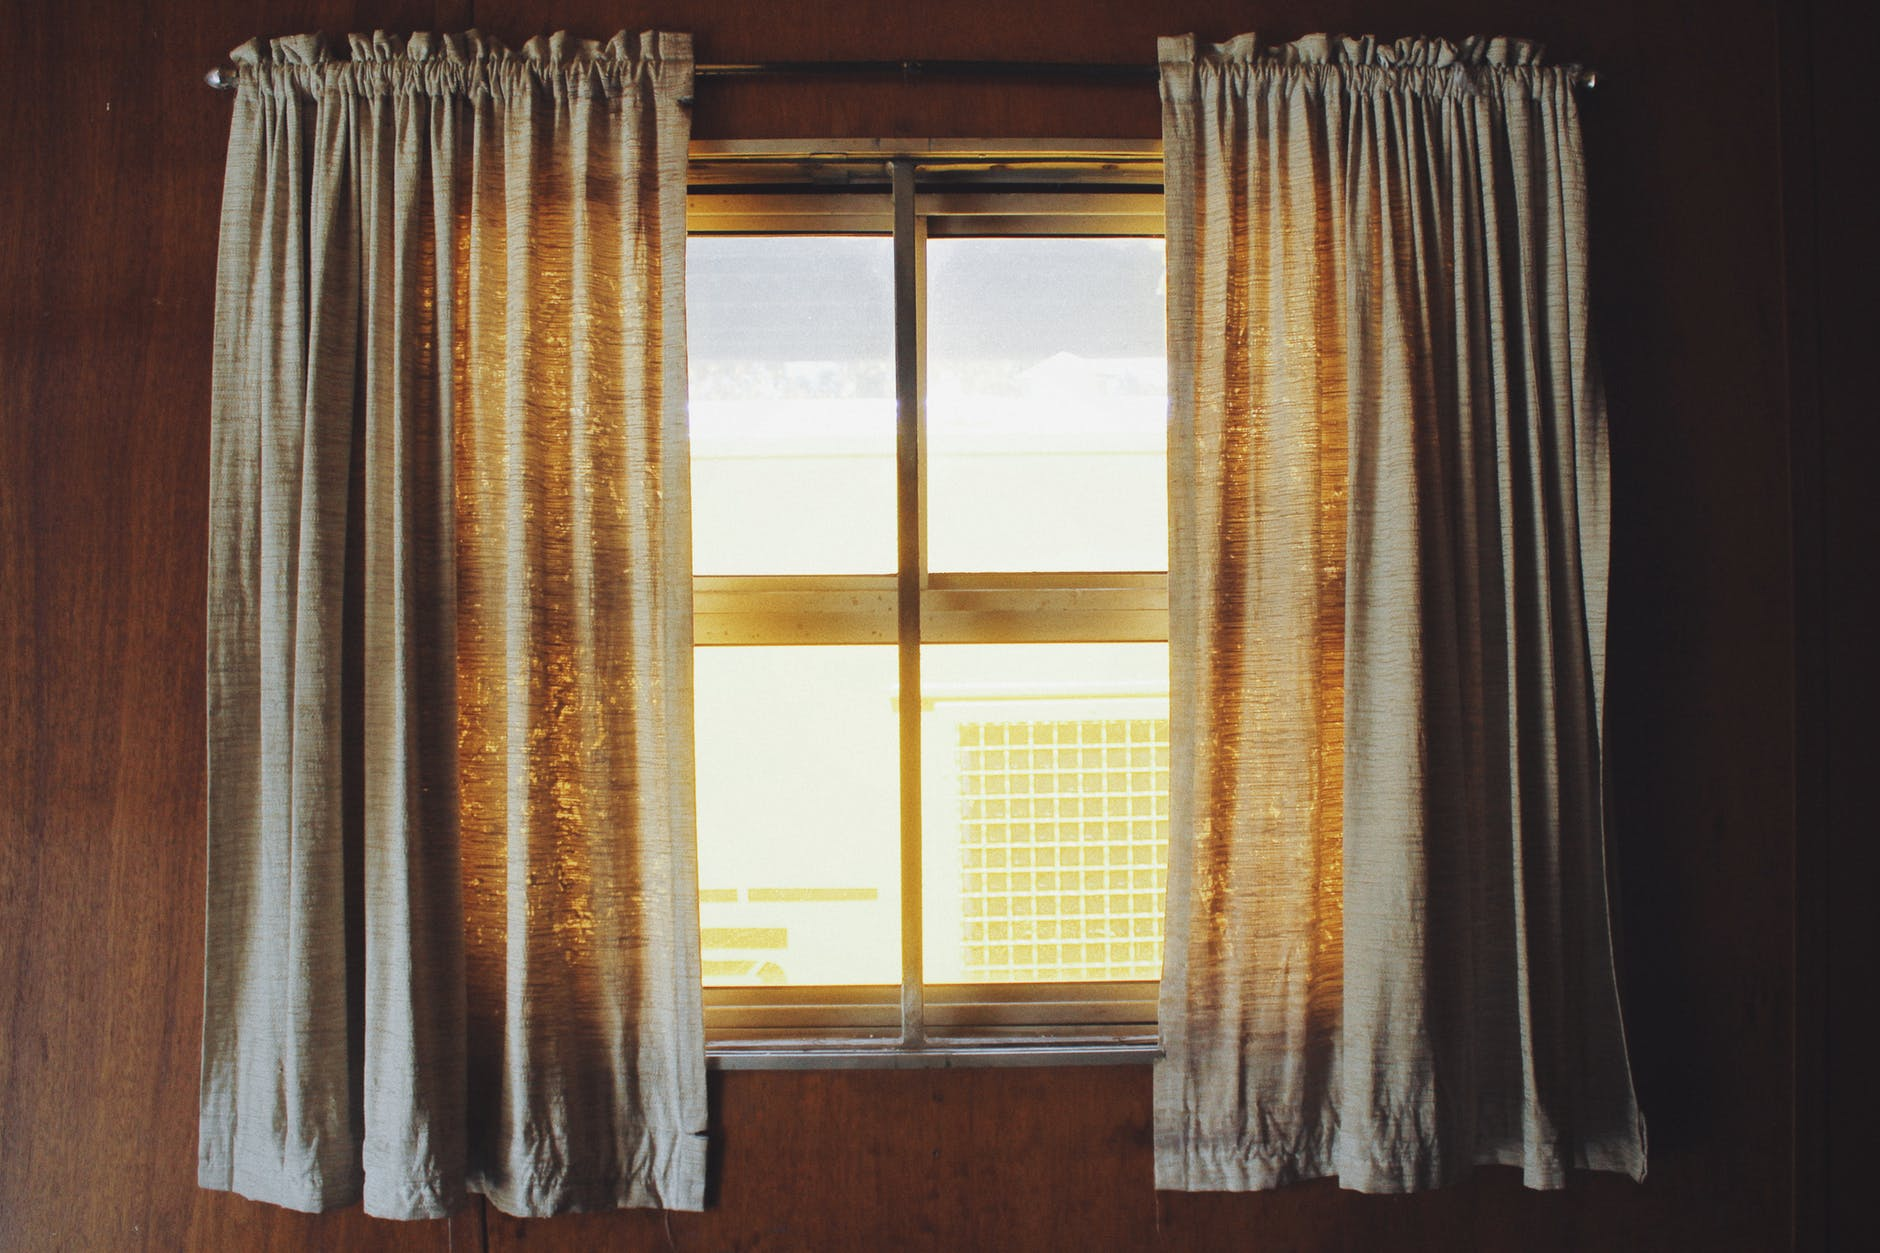 A pair of thin grey curtains hung up near a square window